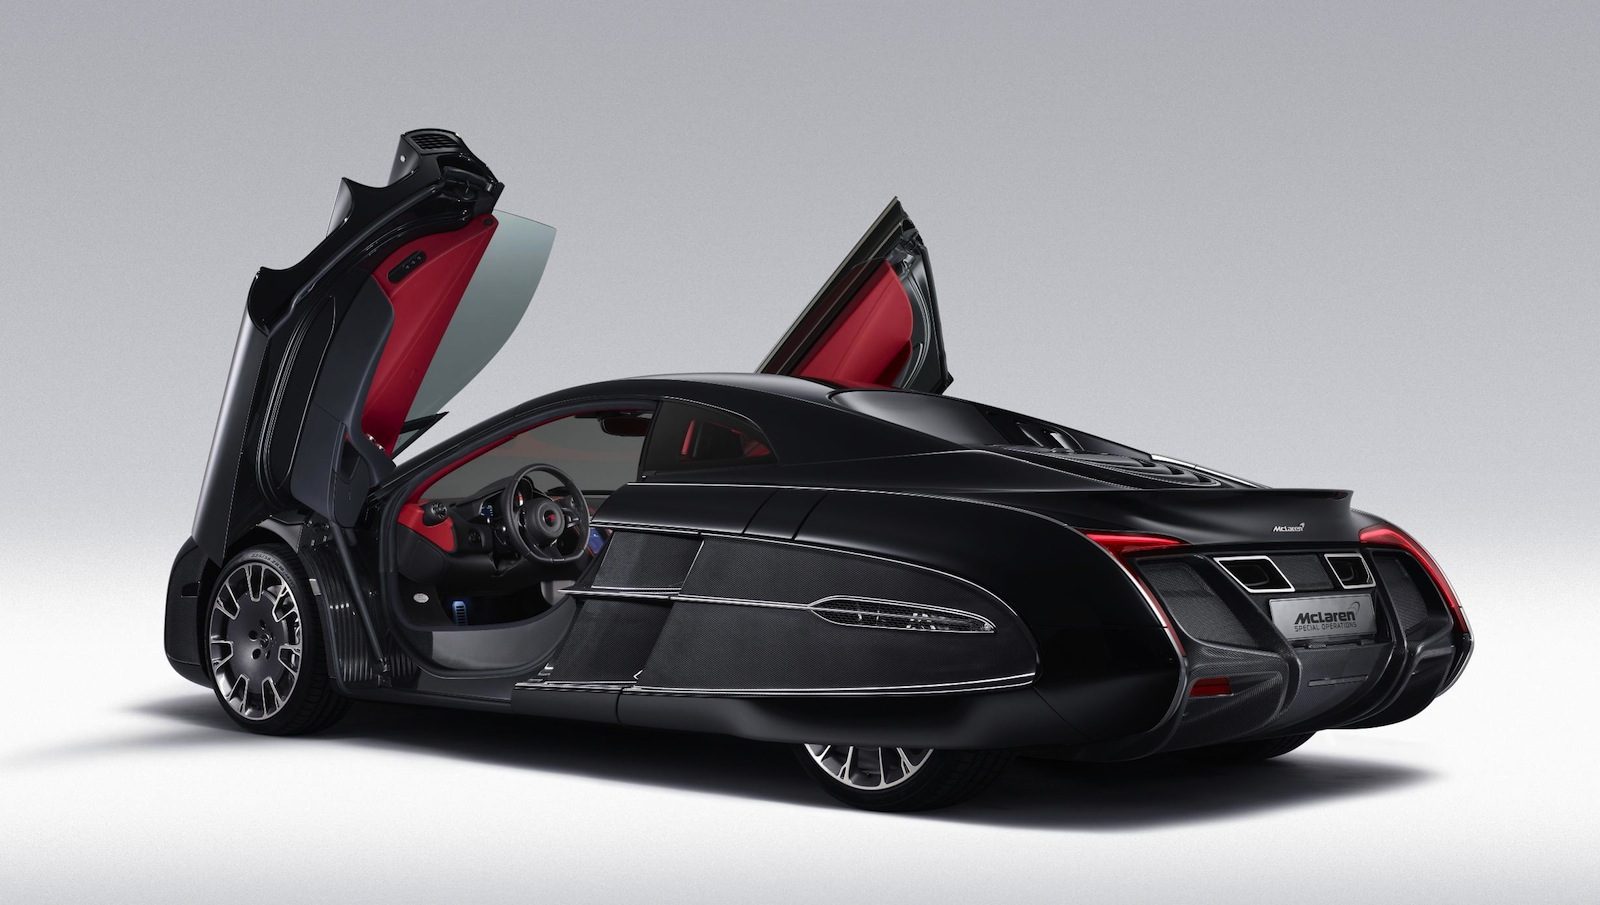 mclaren-x-1-concept-6